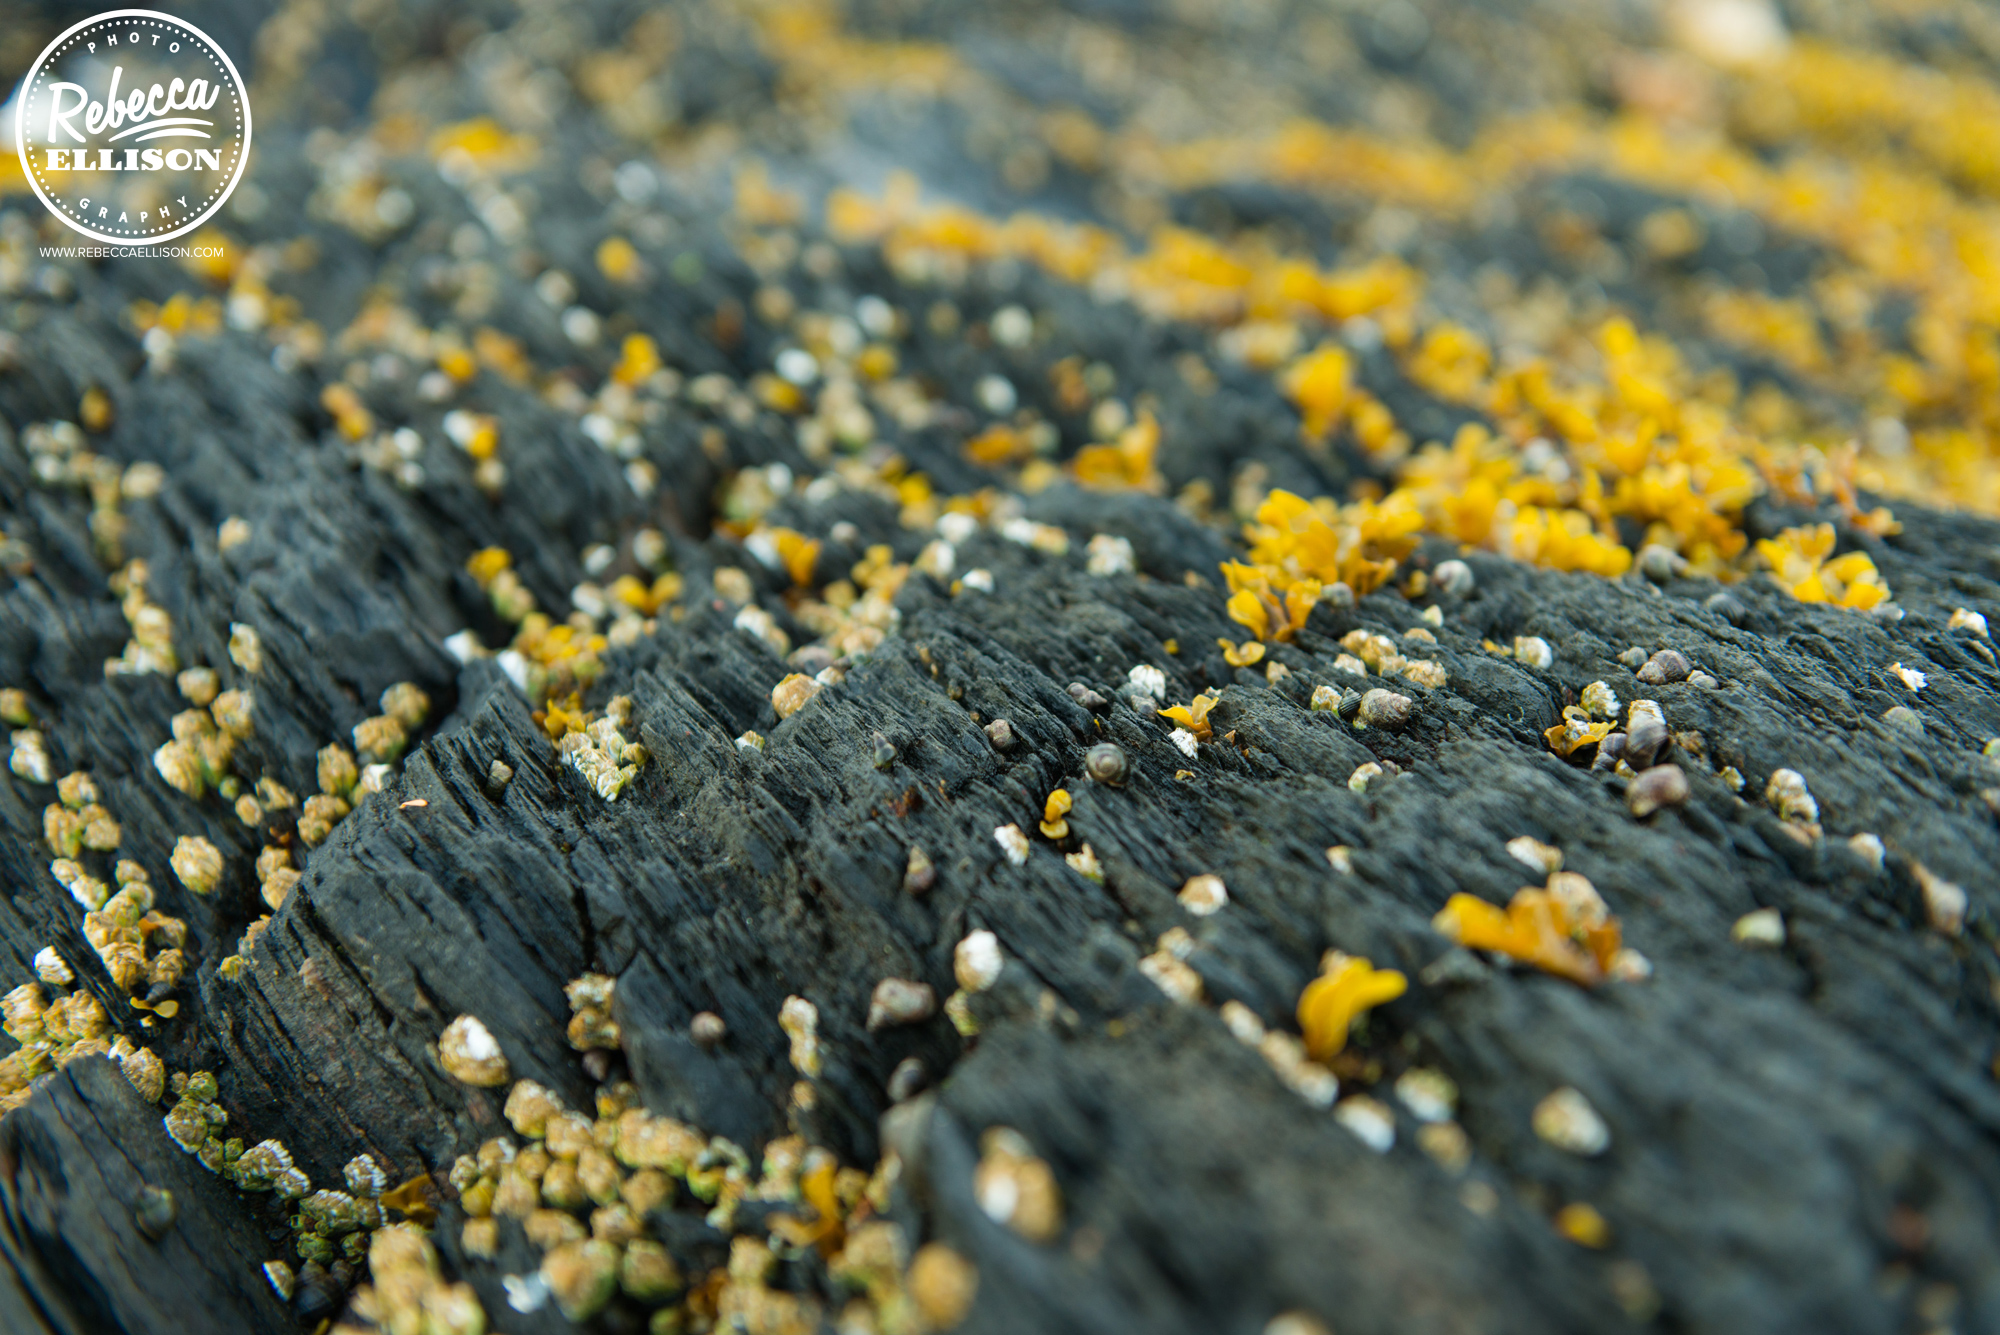 Lichen on rocks in Ketchikan Alaska photographed by Rebecca Ellison Photography